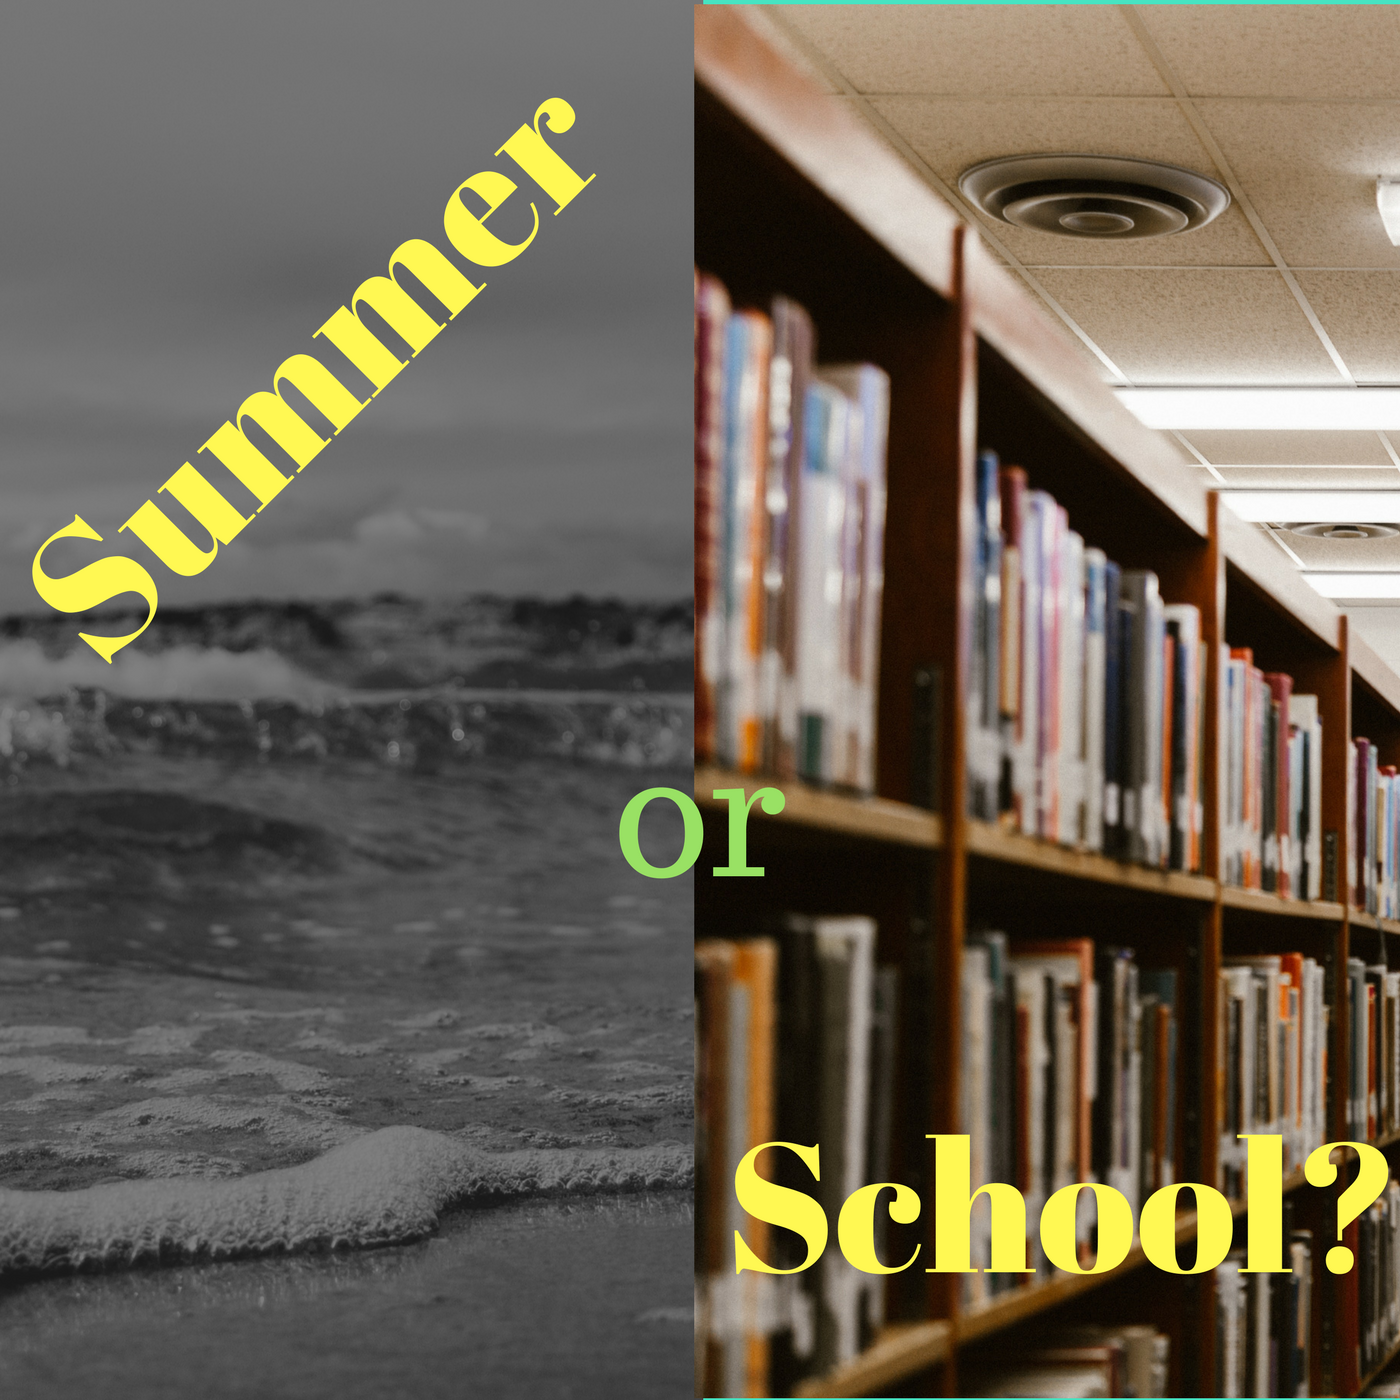 A clash of a summer image and a school image. Photos by Despo Potamou and  Priscilla Du Preez on Unsplash.